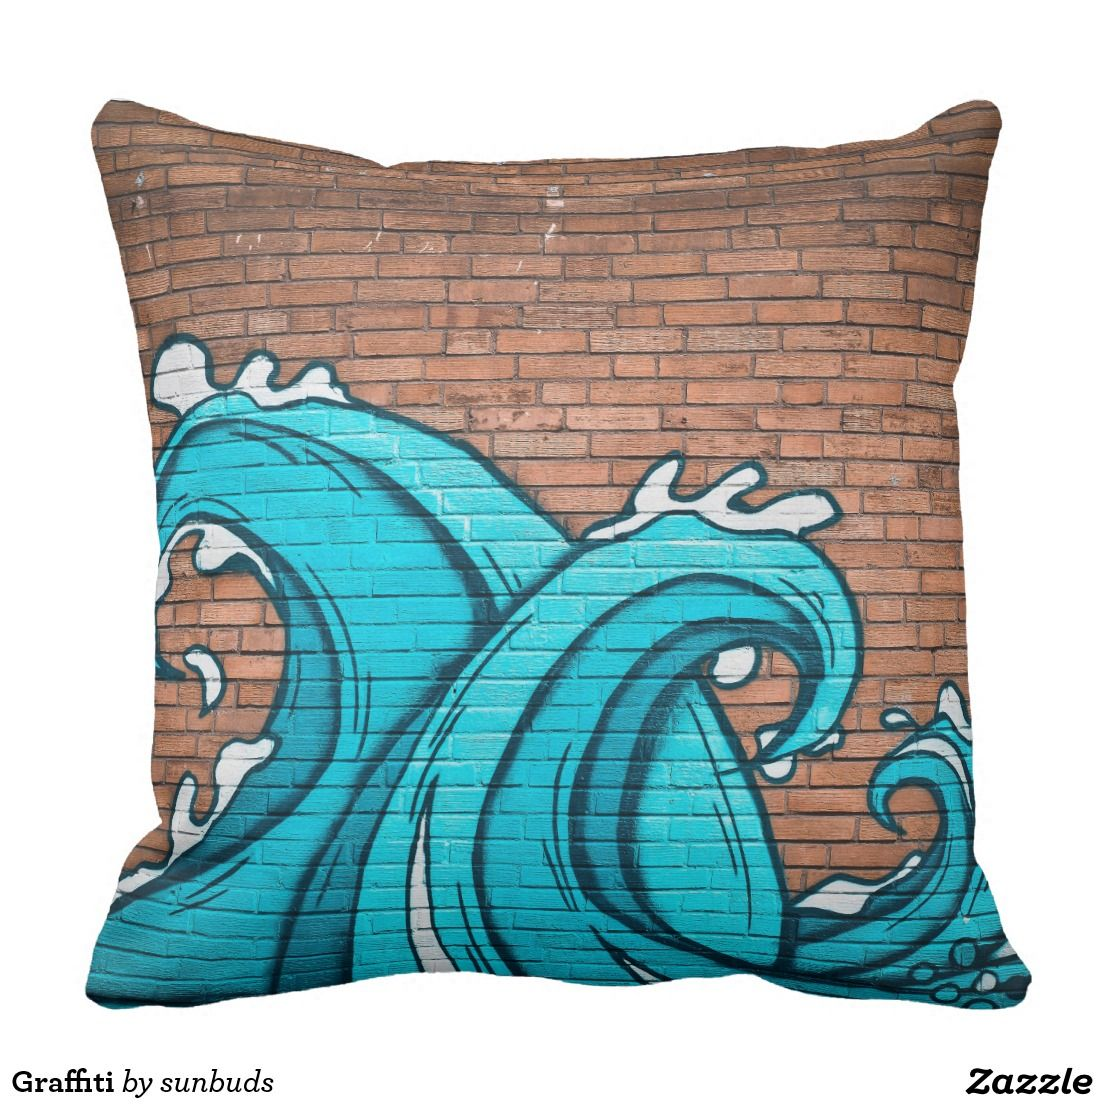 Graffiti With Images Decorative Throw Pillows